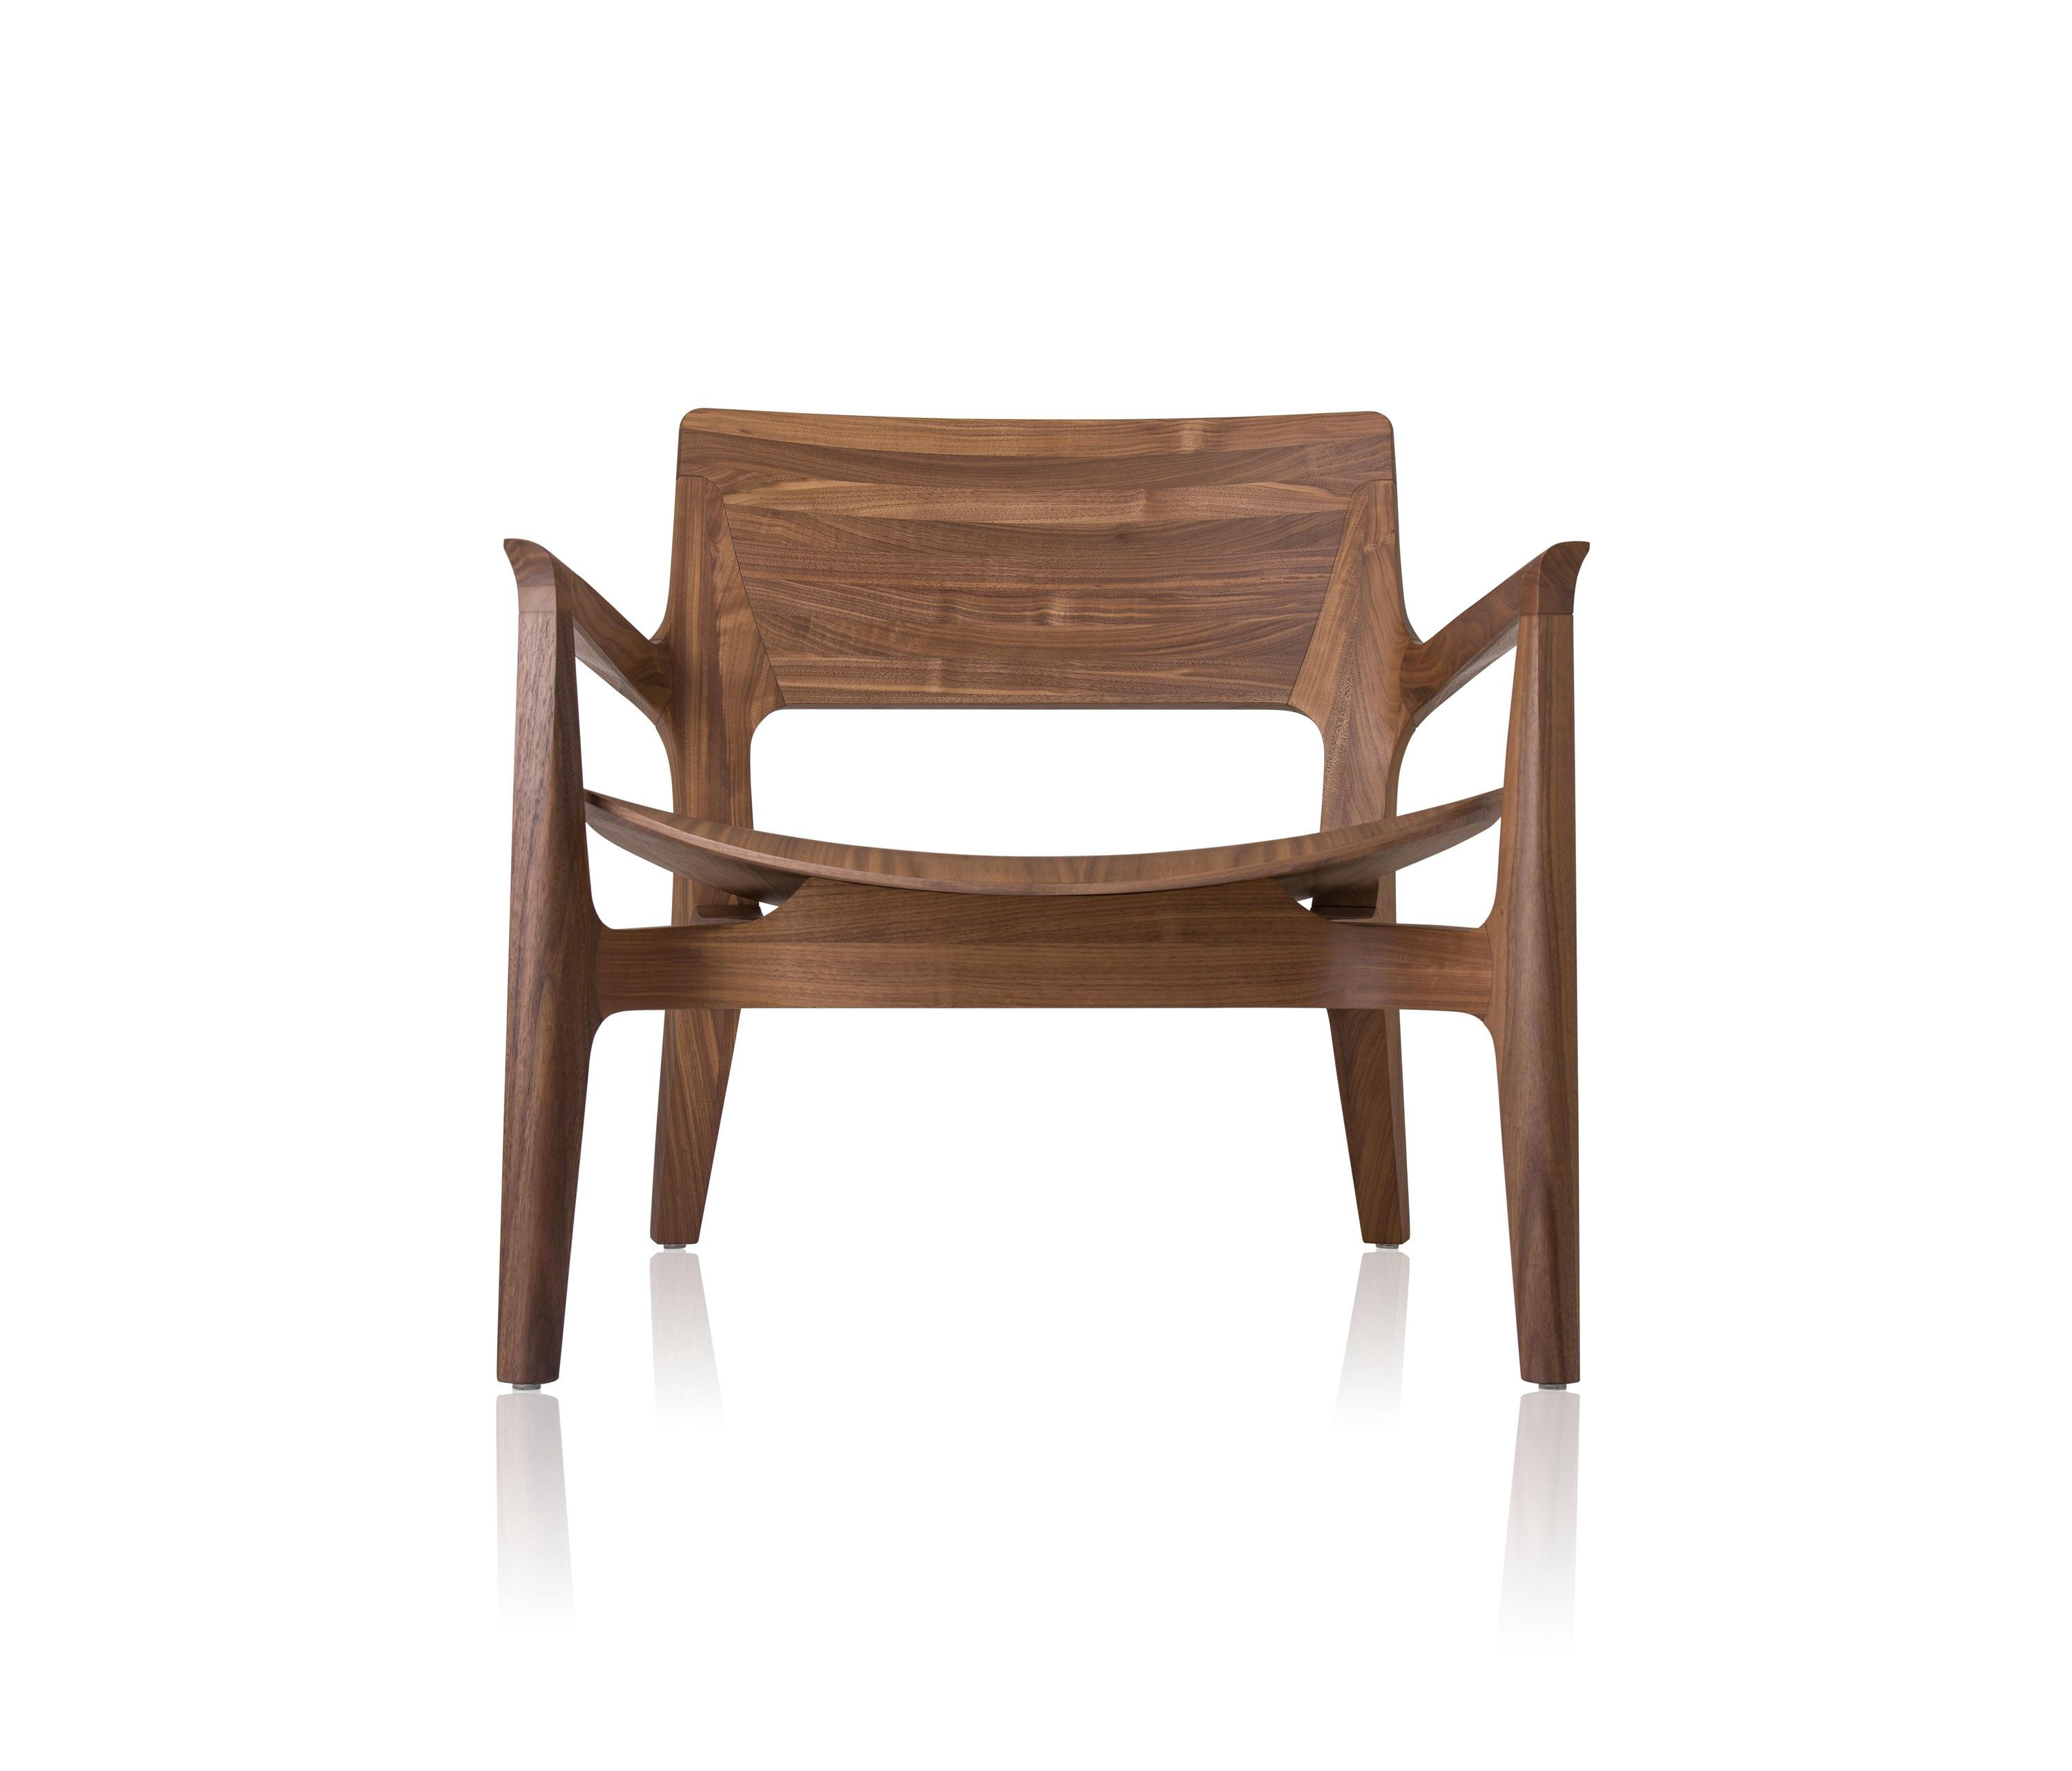 Mirah lounge chair by Jader Almeida - Kelly Christian Designs